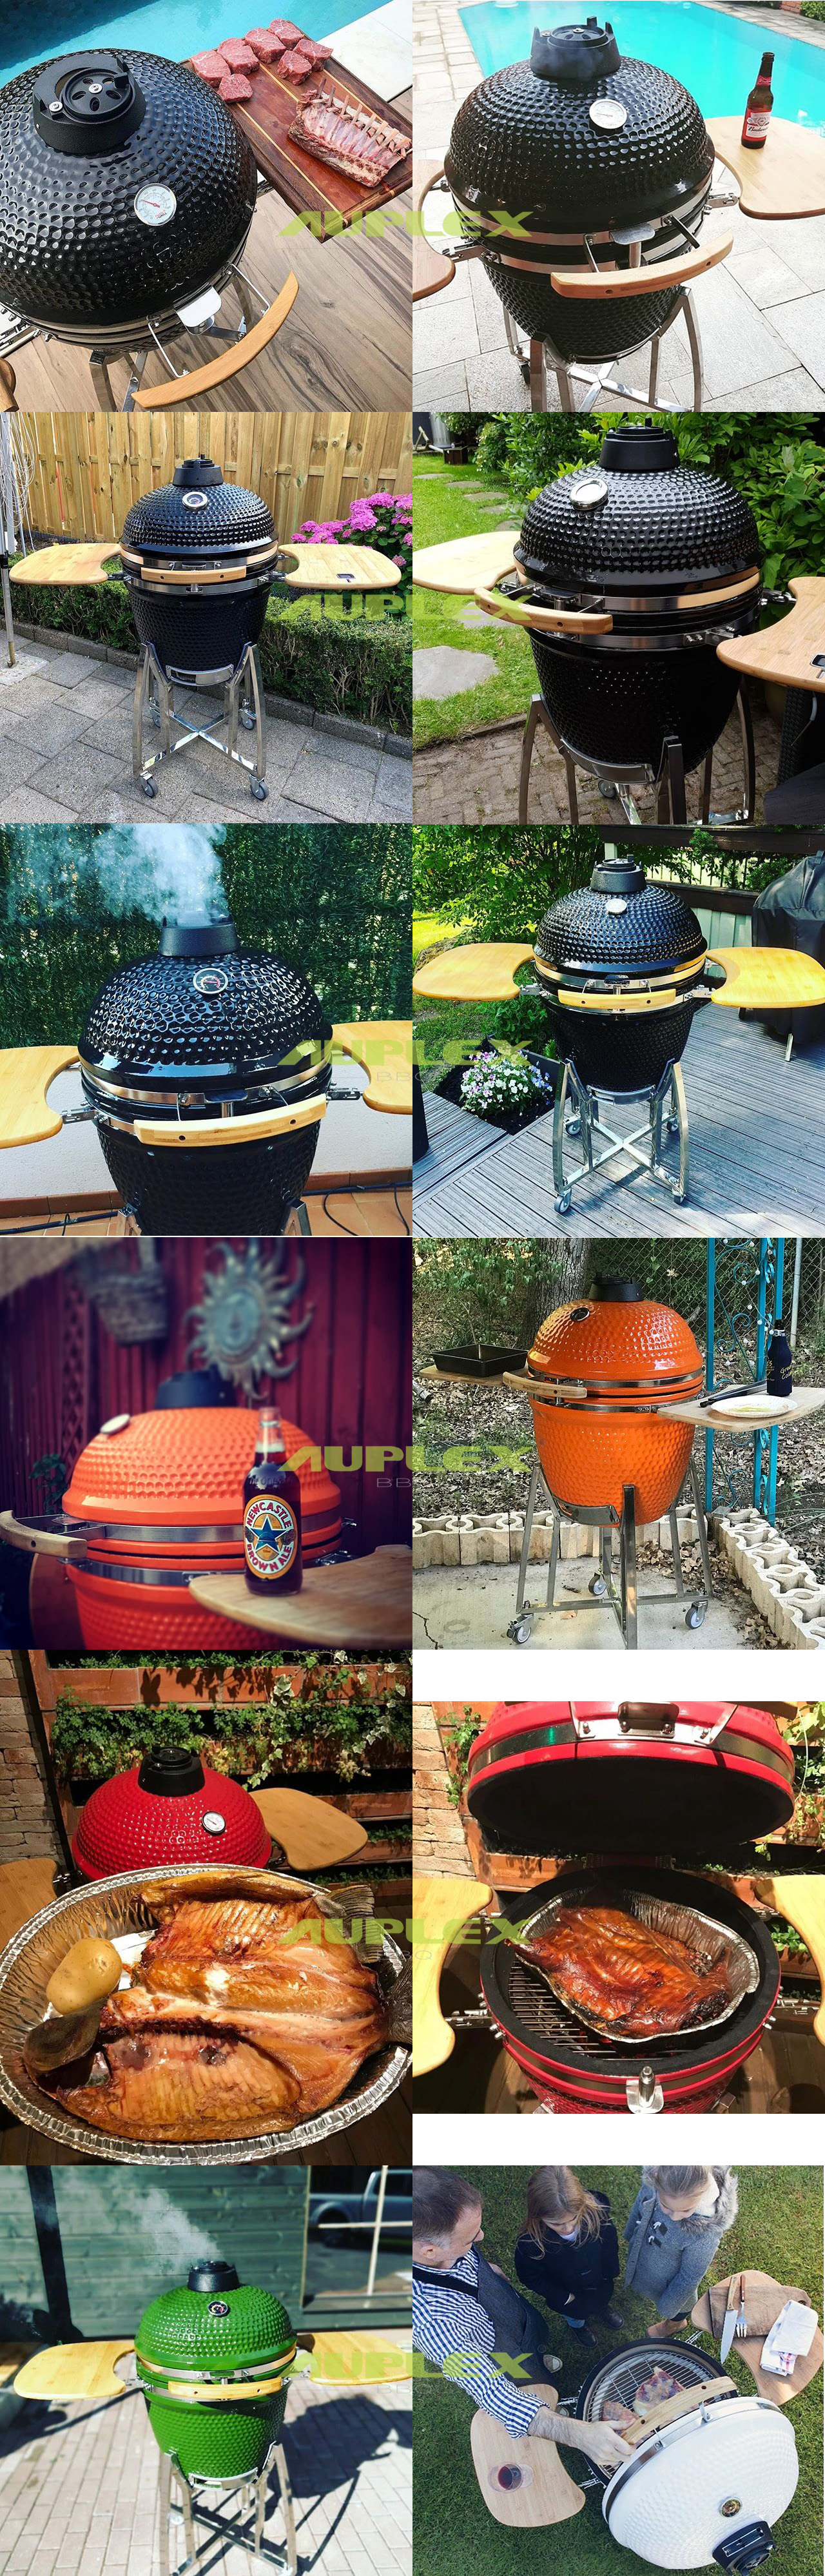 21'' Ceramic Barbecue Smoker Kamado Grill